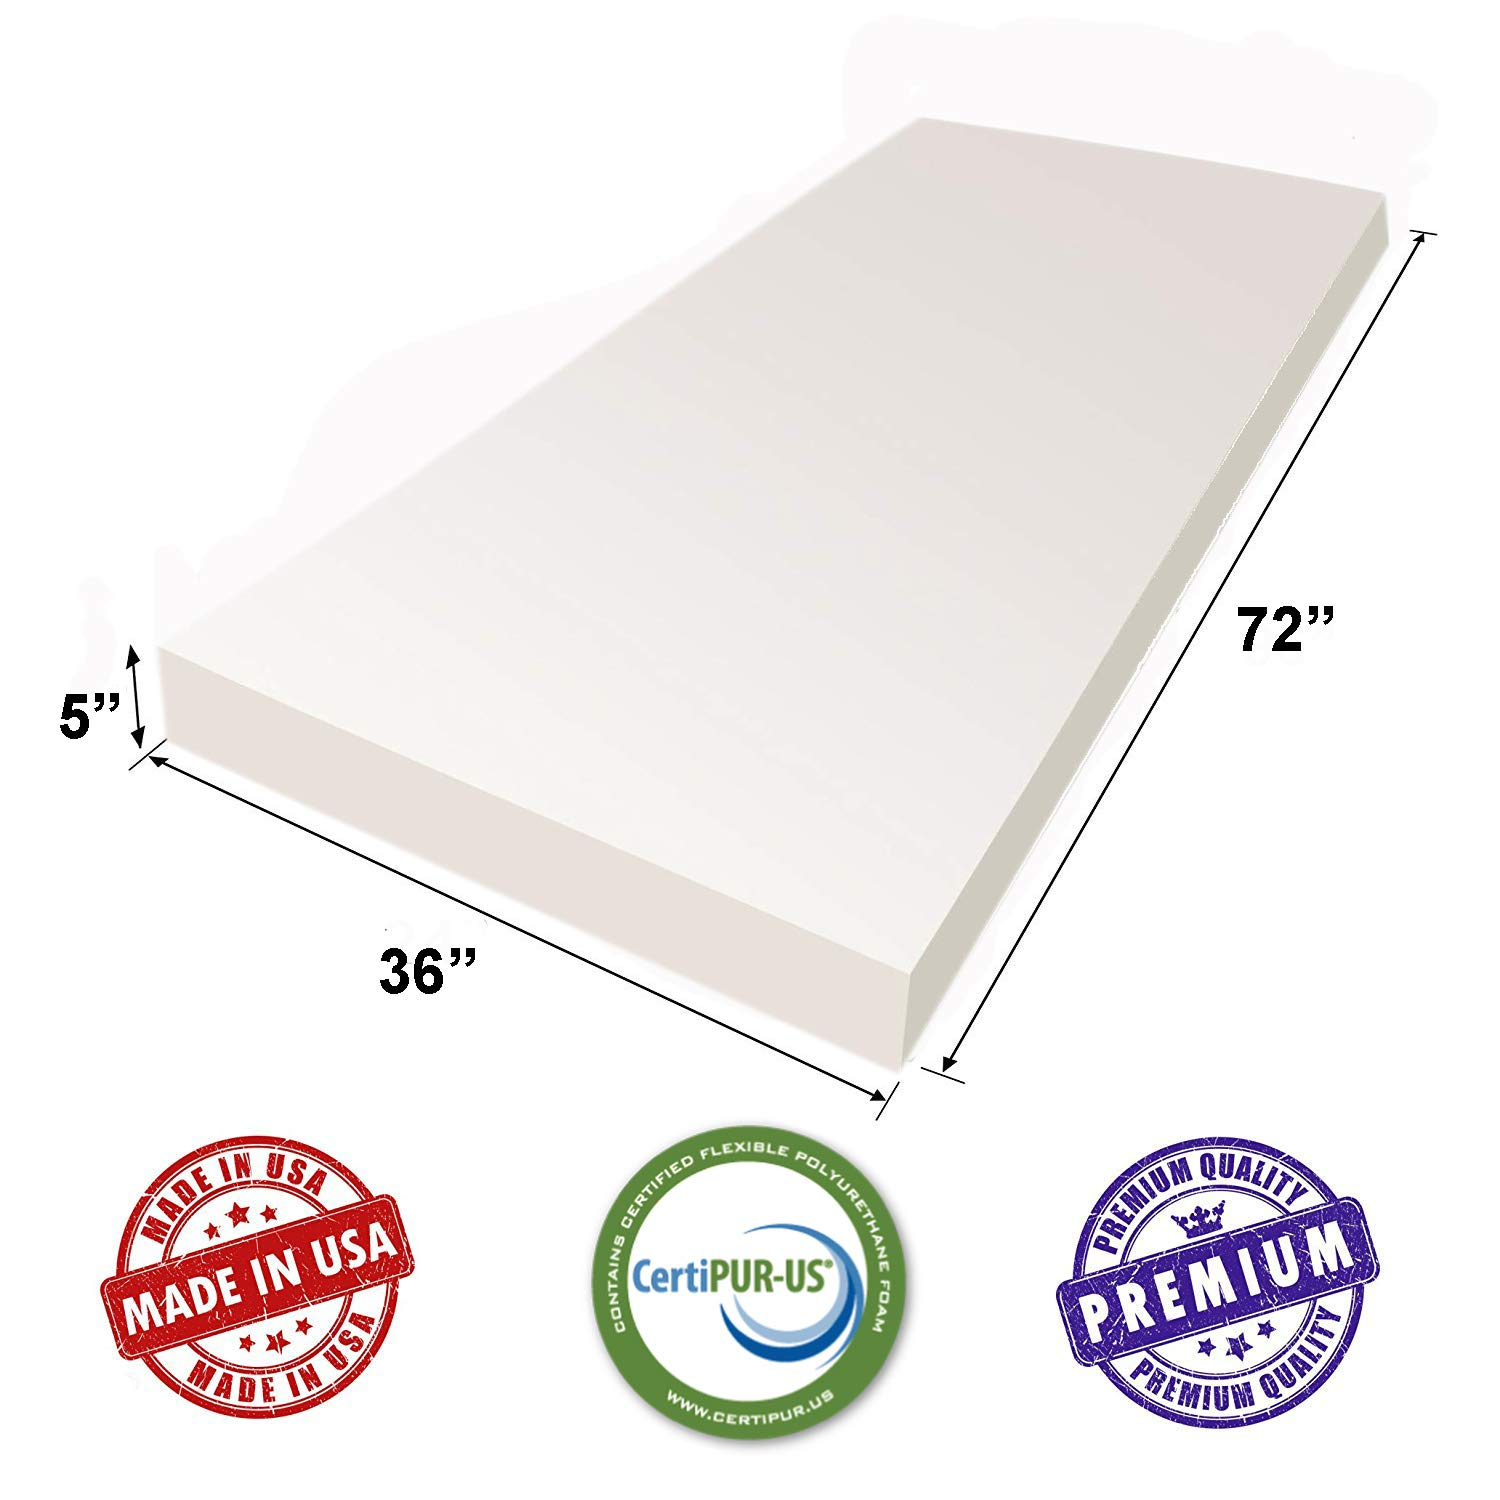 3 H X 36 W X 72 L White Upholstery Sheet Foam Padding CertiPUR-US Certified Seat Replacement, Foam Cushion, Upholstery Sheet AK TRADING CO -